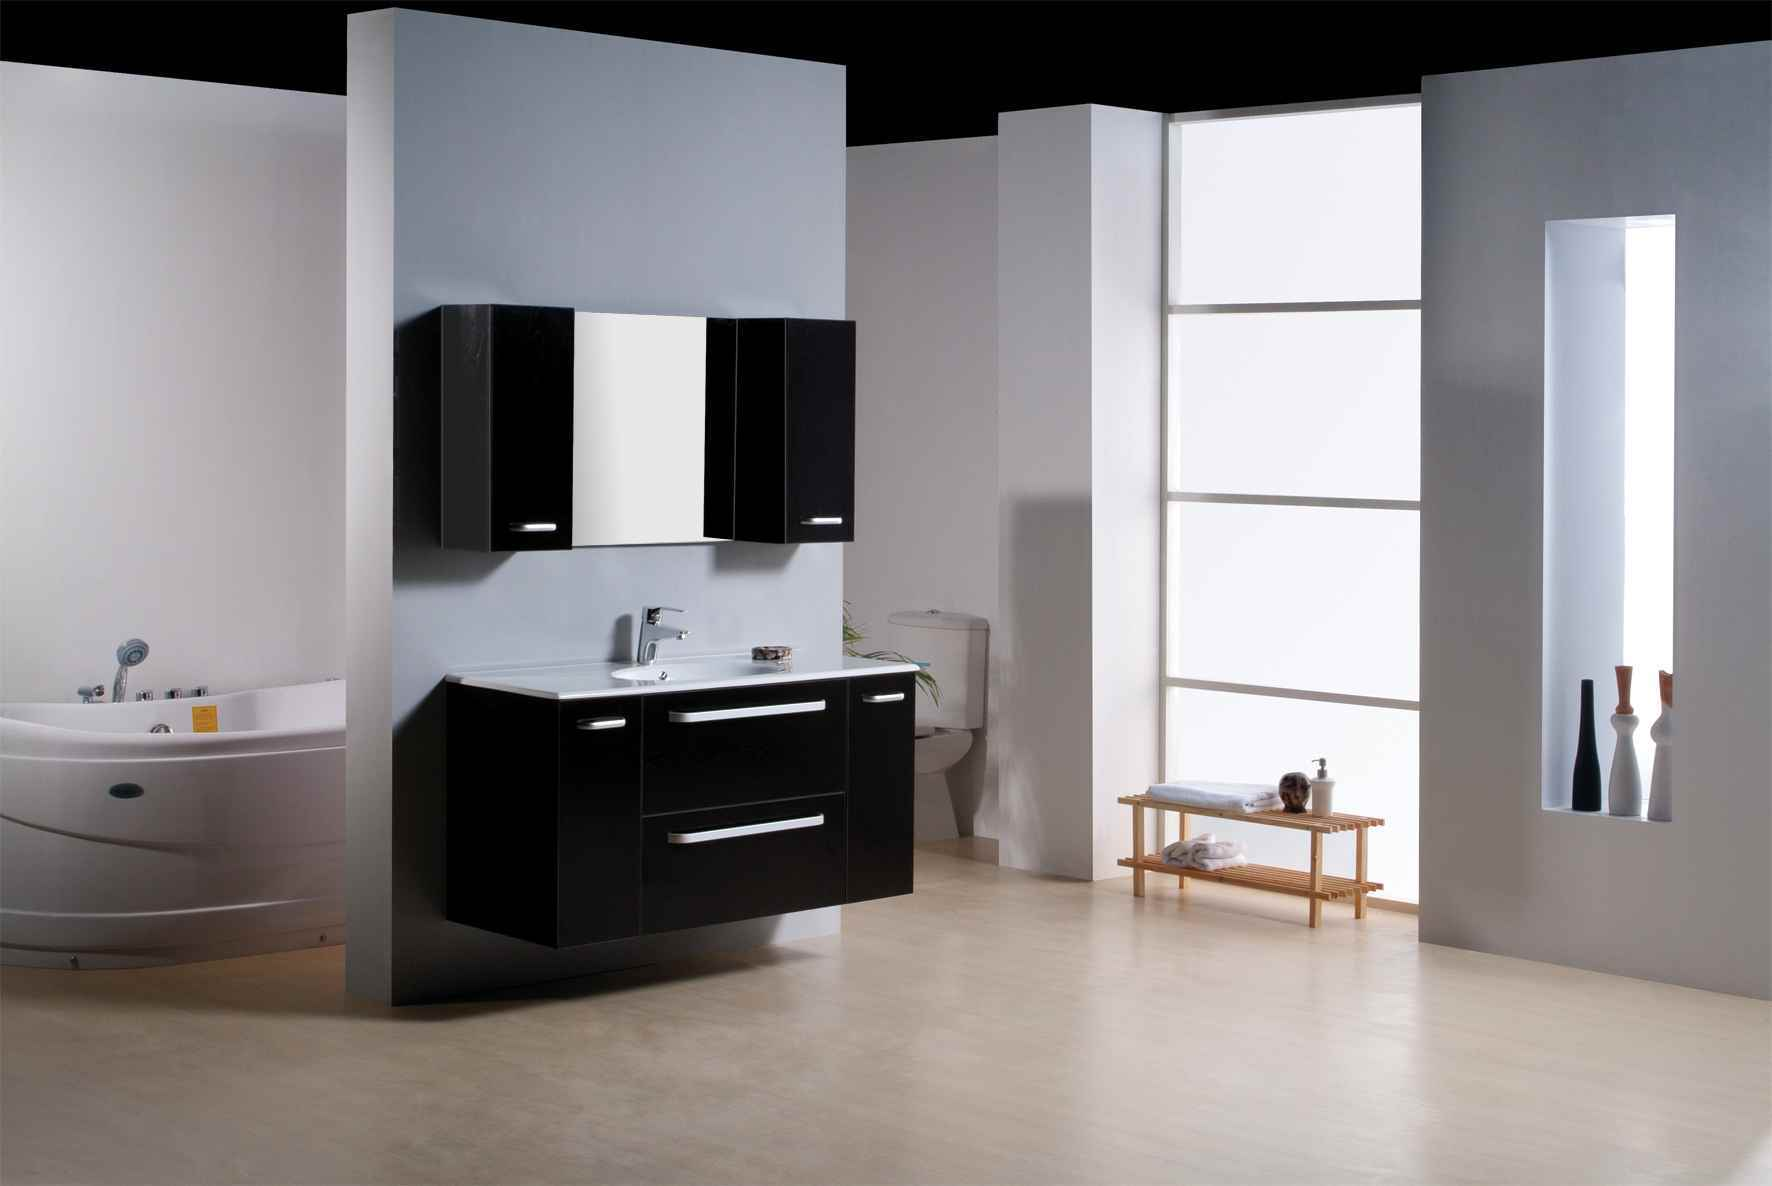 Bathroom Cabinets Designs Photos : China new design bathroom cabinet